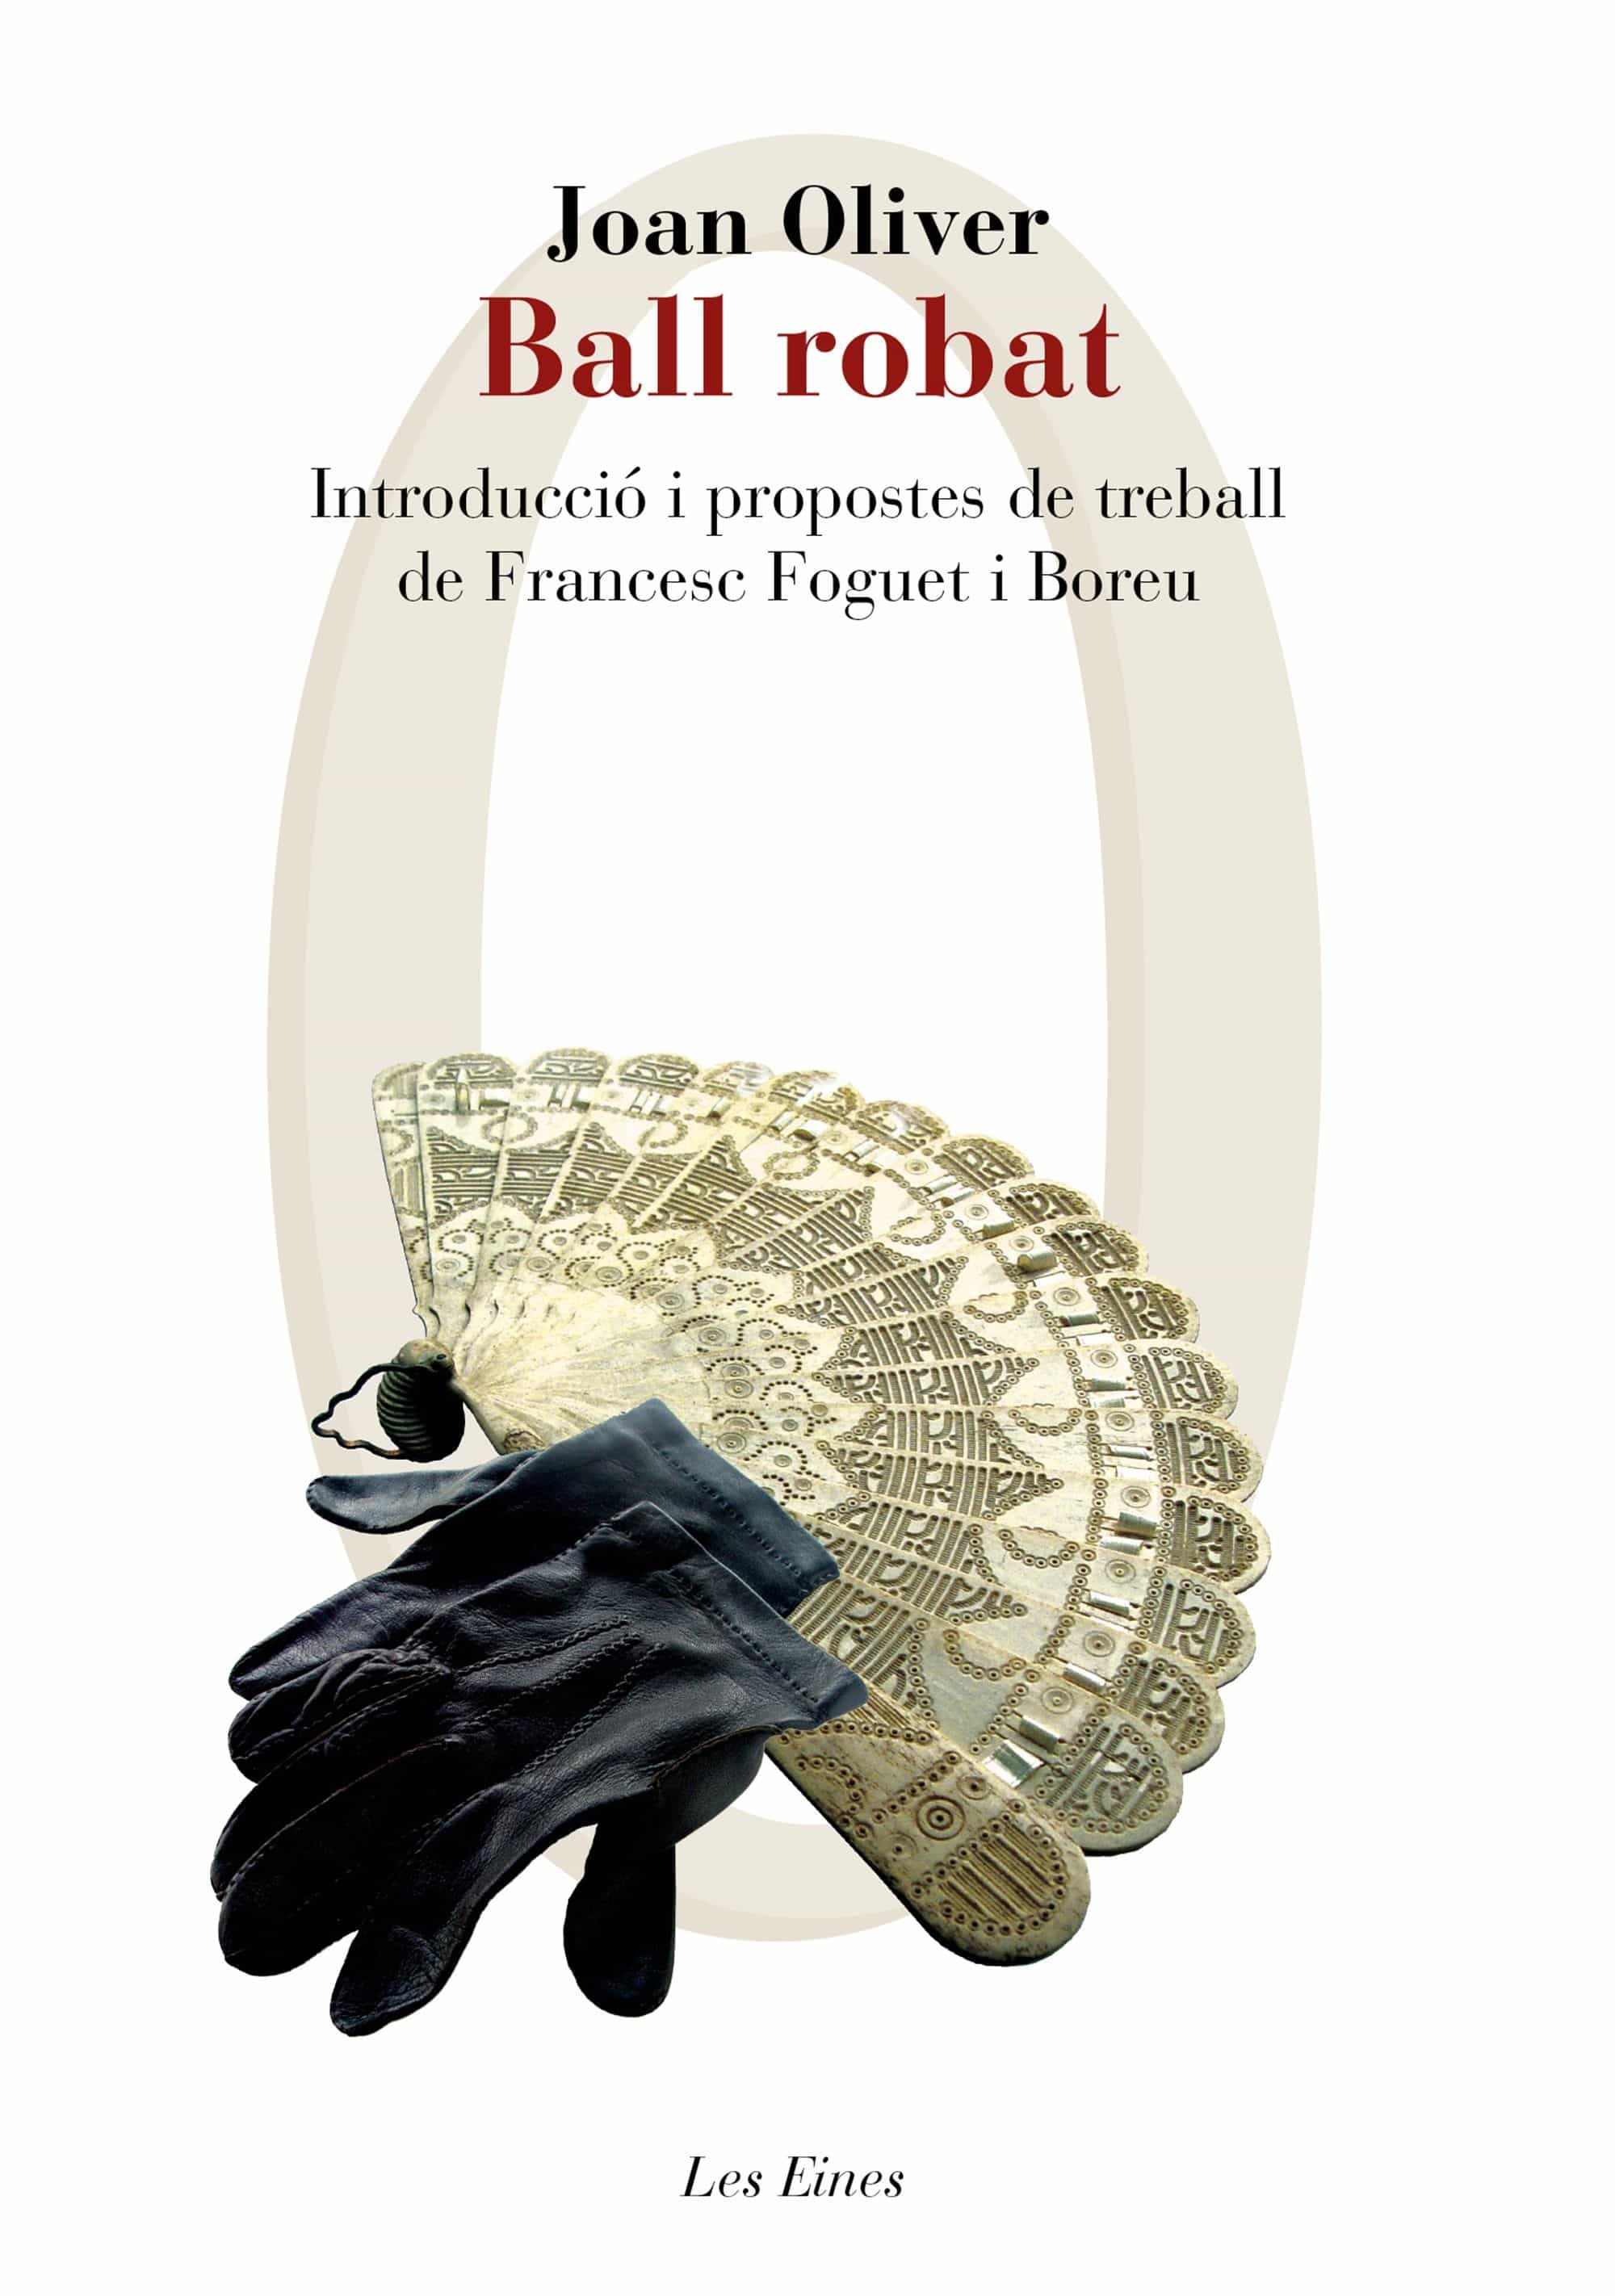 ball robat-joan oliver-9788415954309